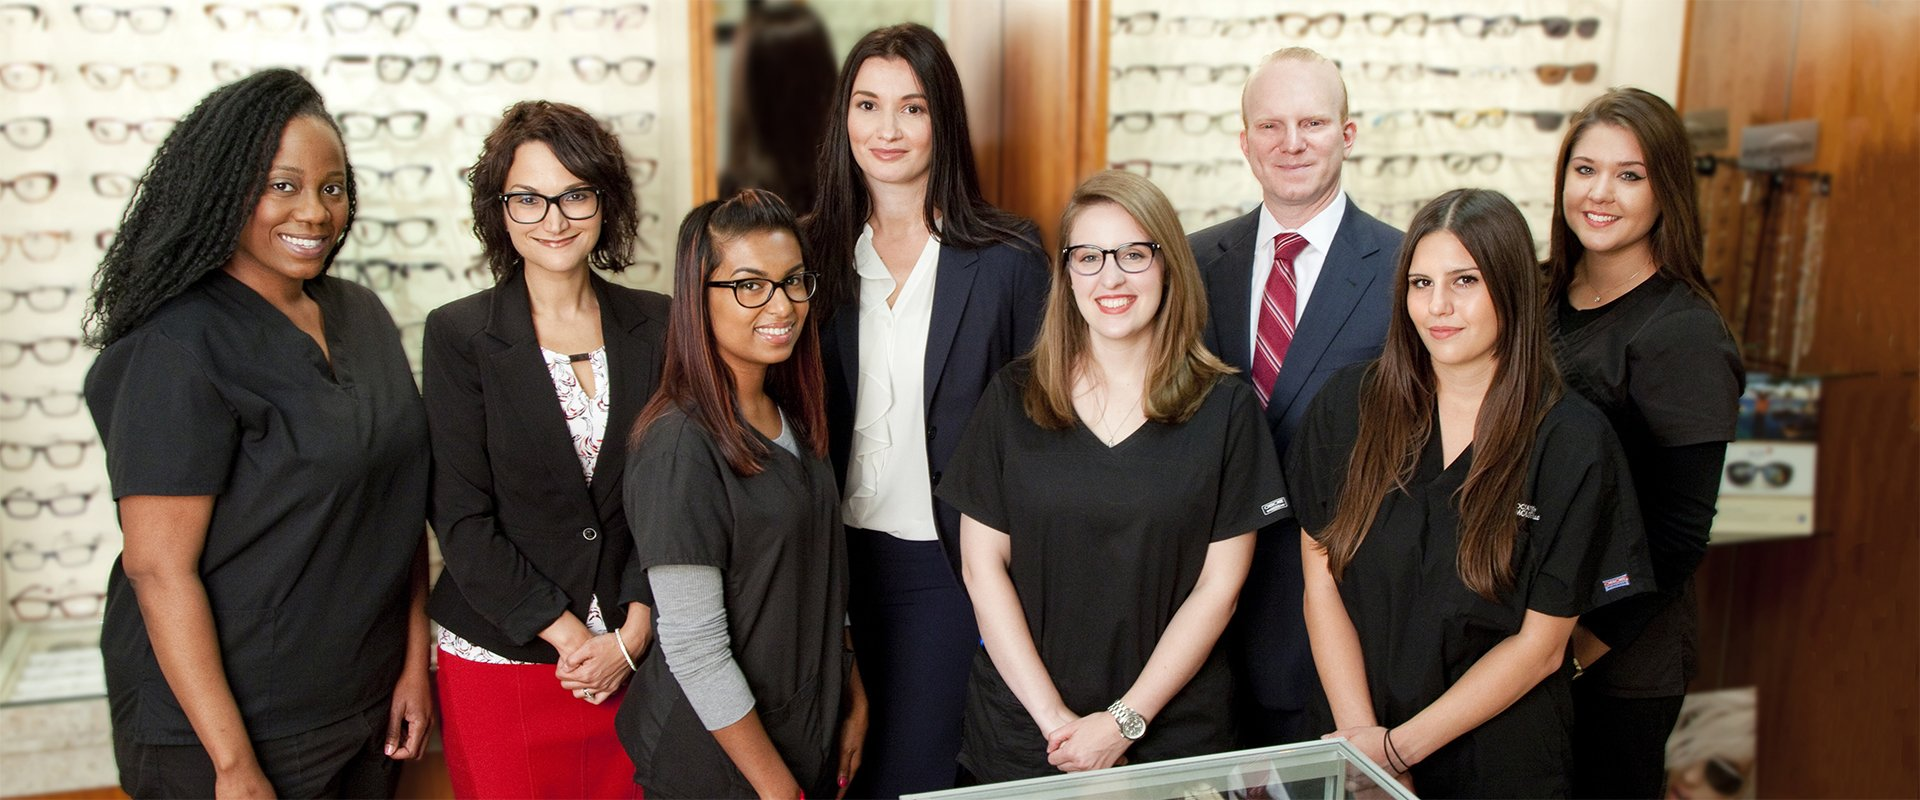 Associates in Ophthalmology Staff